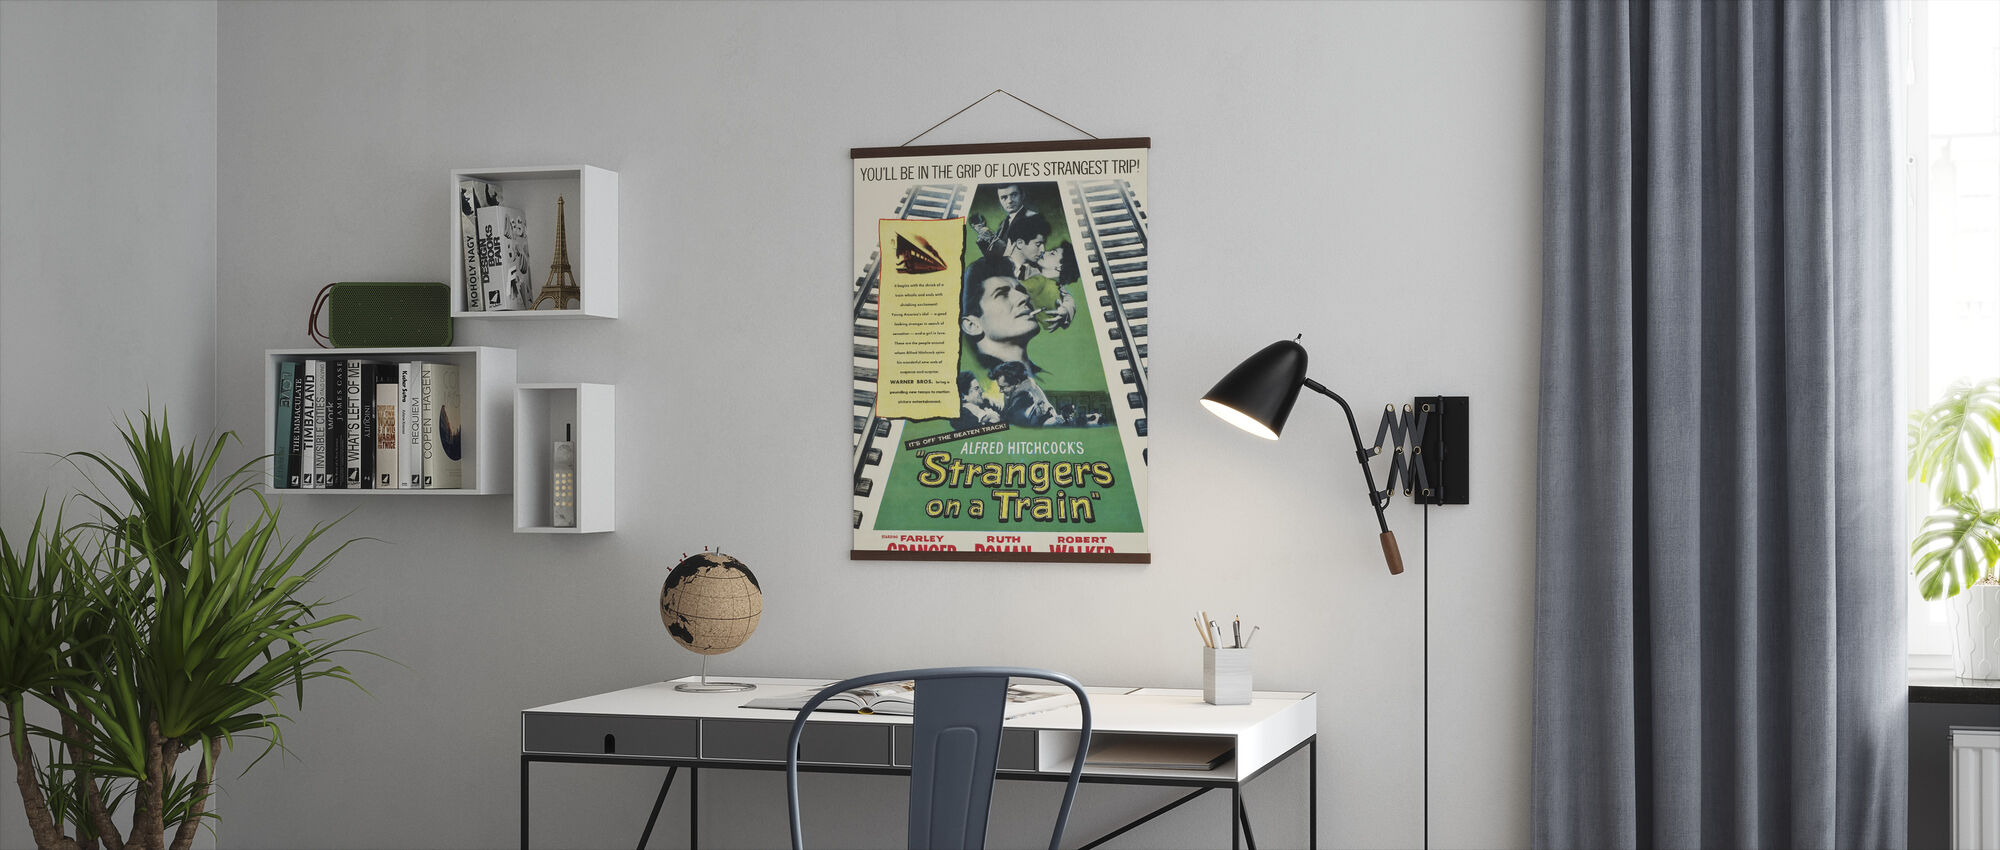 Strangers on a Train - Poster - Office